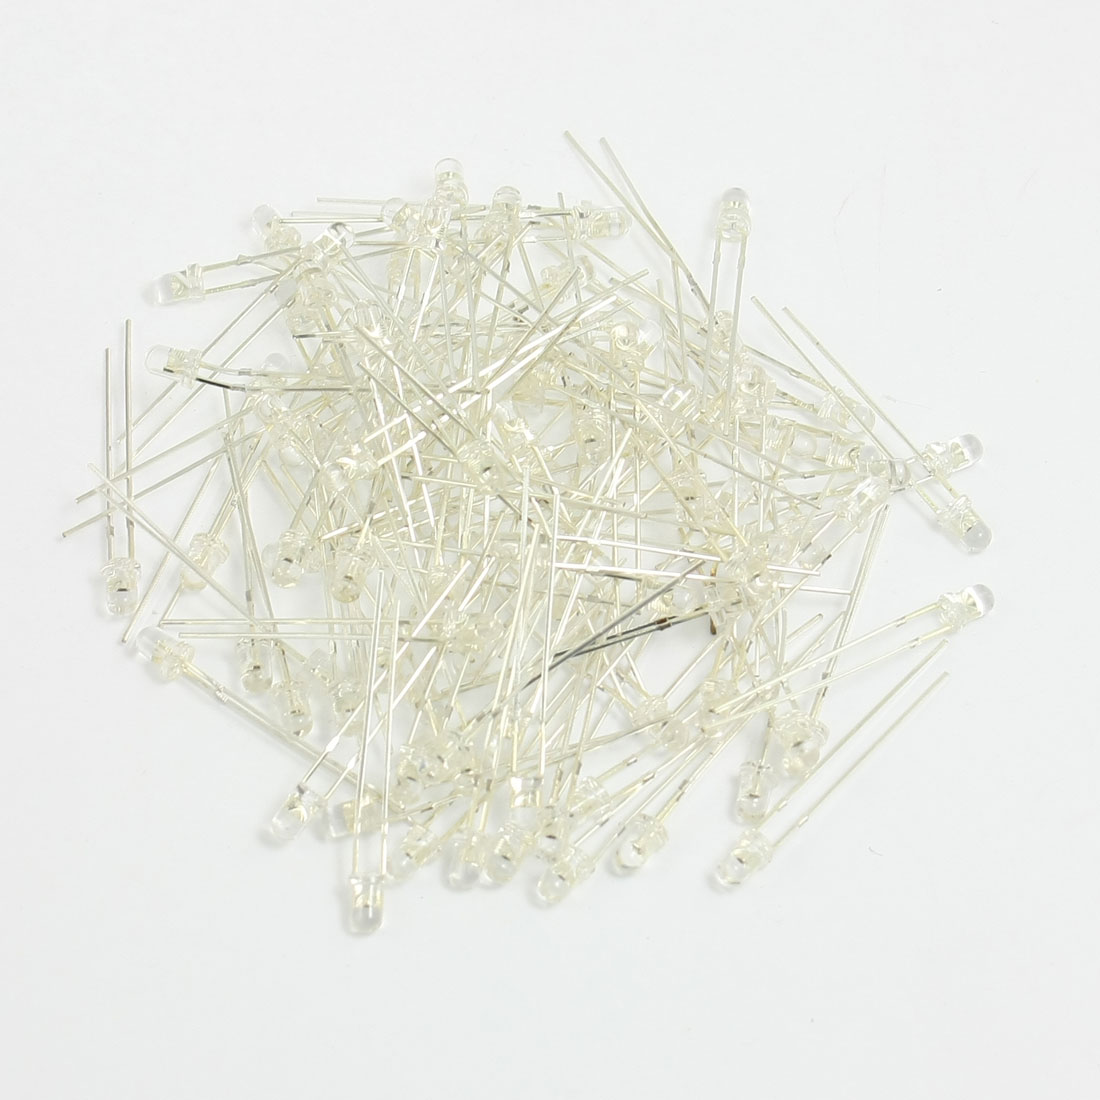 3mm Dia Clear Round Blue Emitting Diode 2 Terminals Light LED Lamp 100PCS